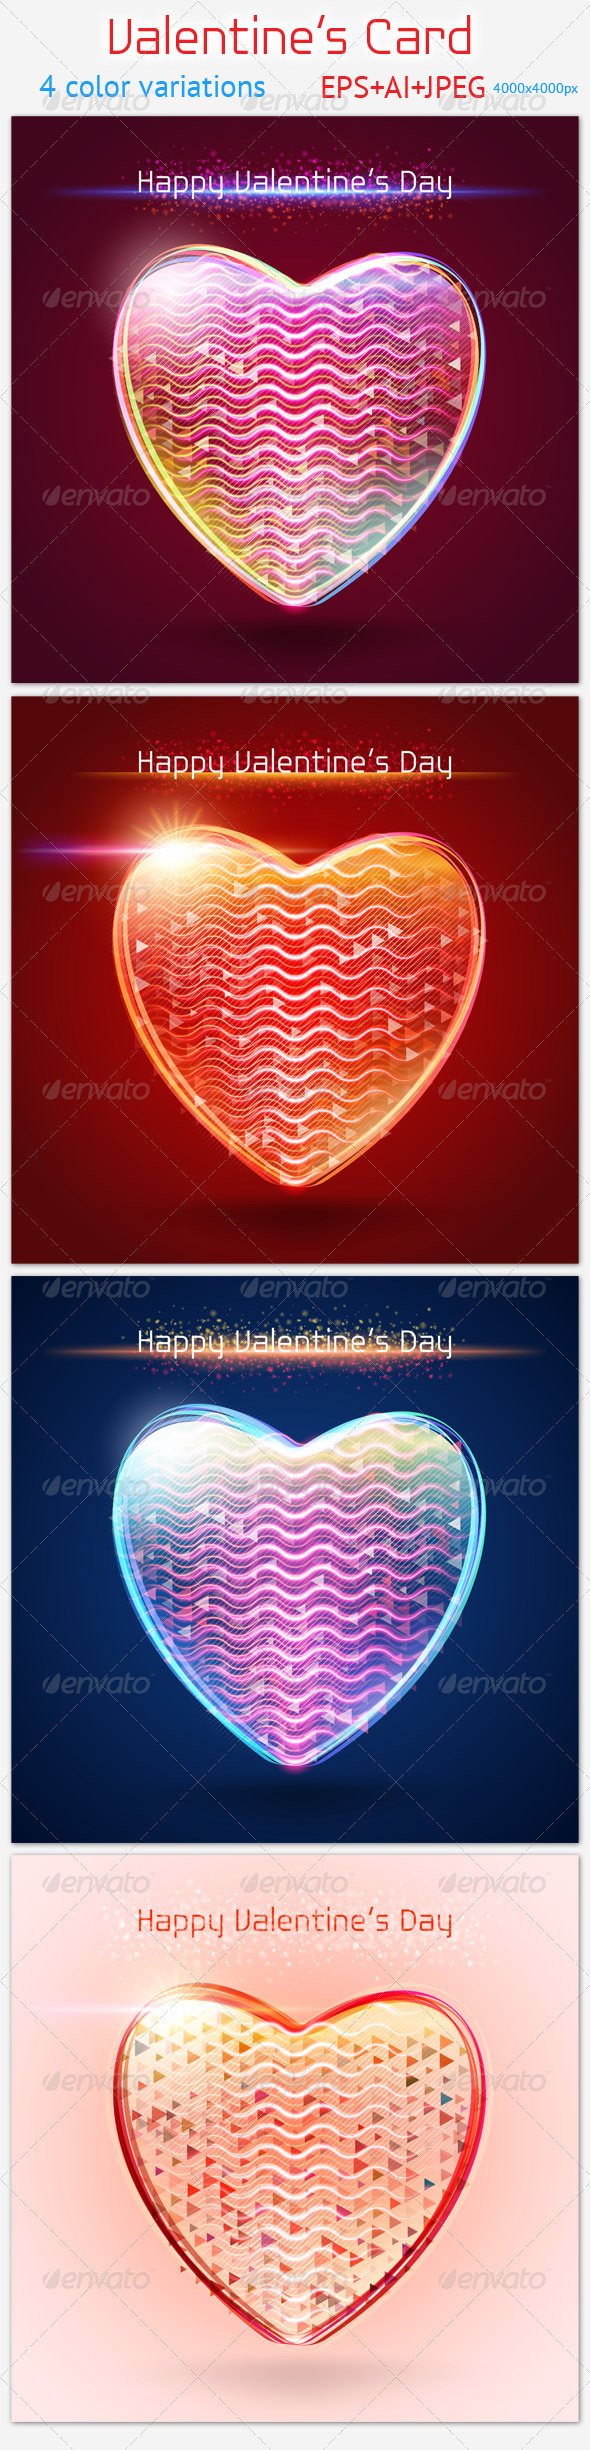 GraphicRiver Valentine s Card 3808922